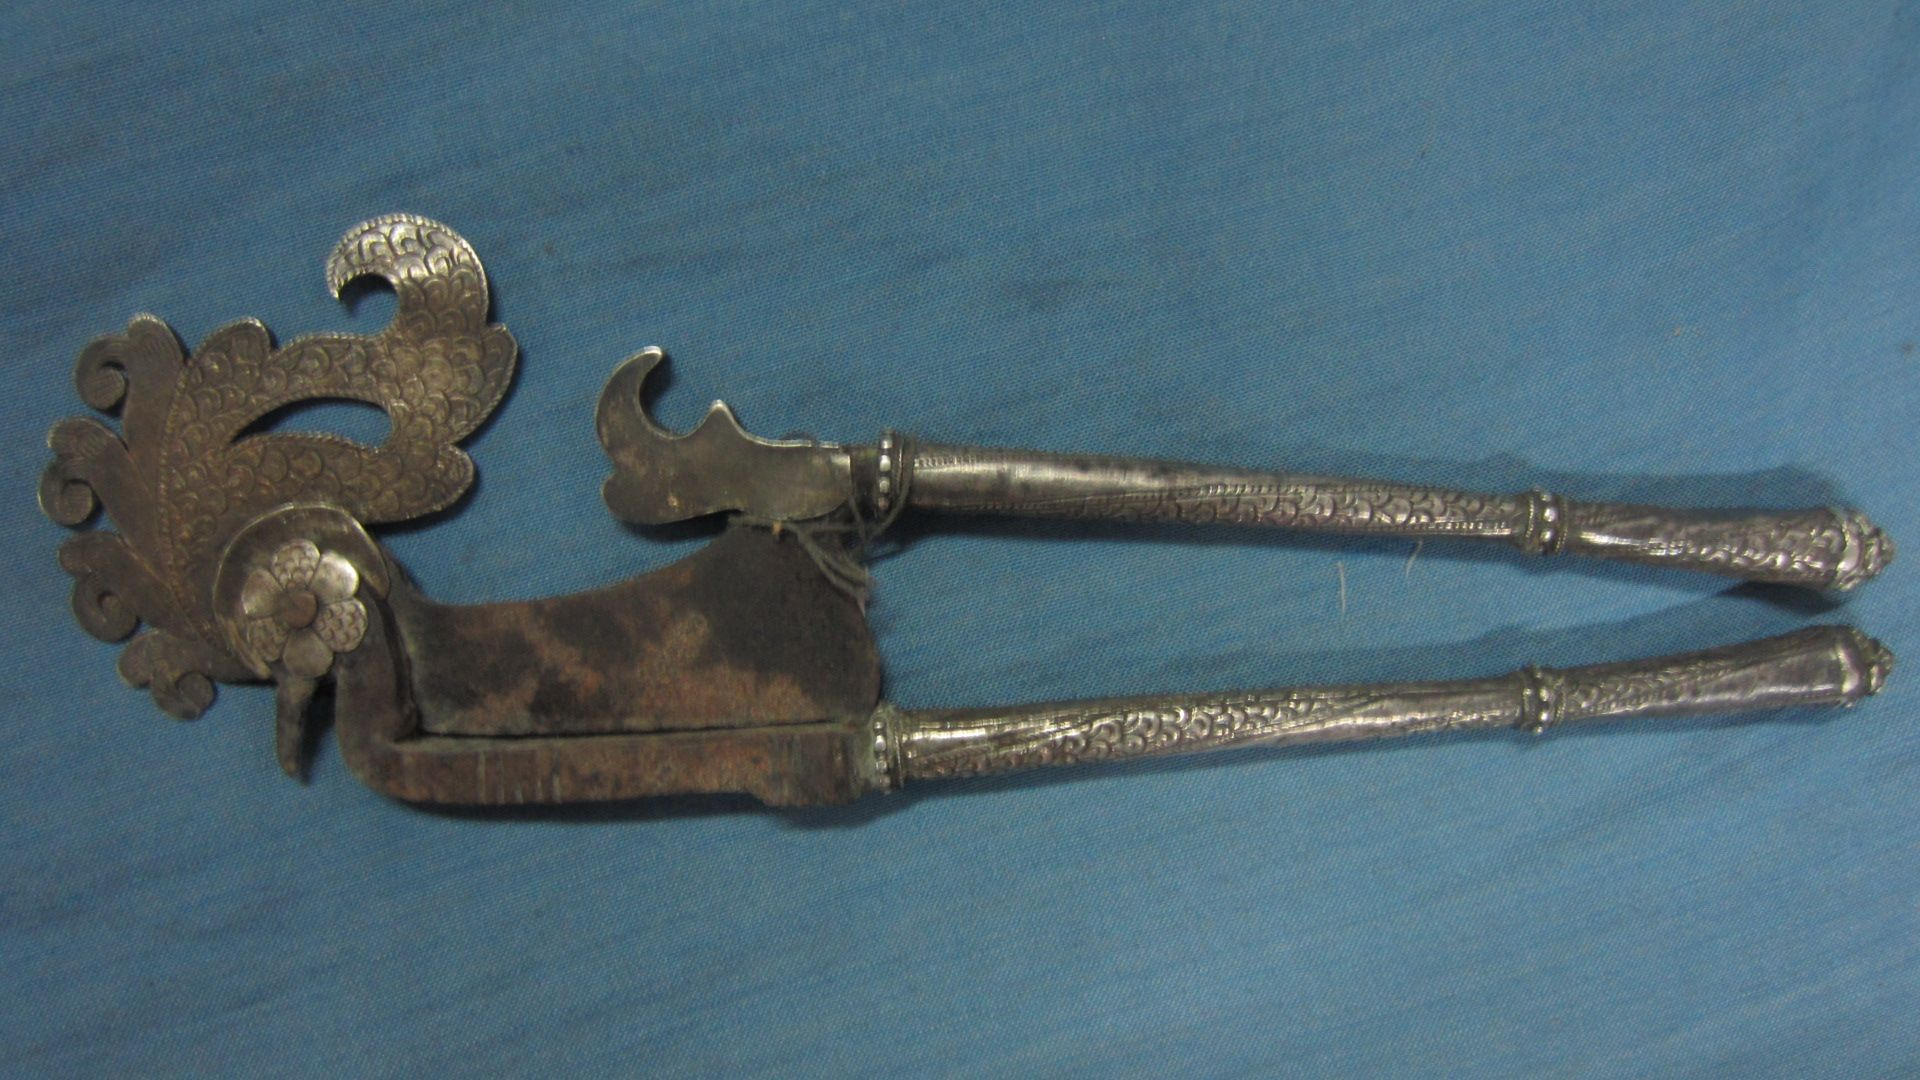 Old iron and silver clad betel nut cutter, kacip, used to cut the